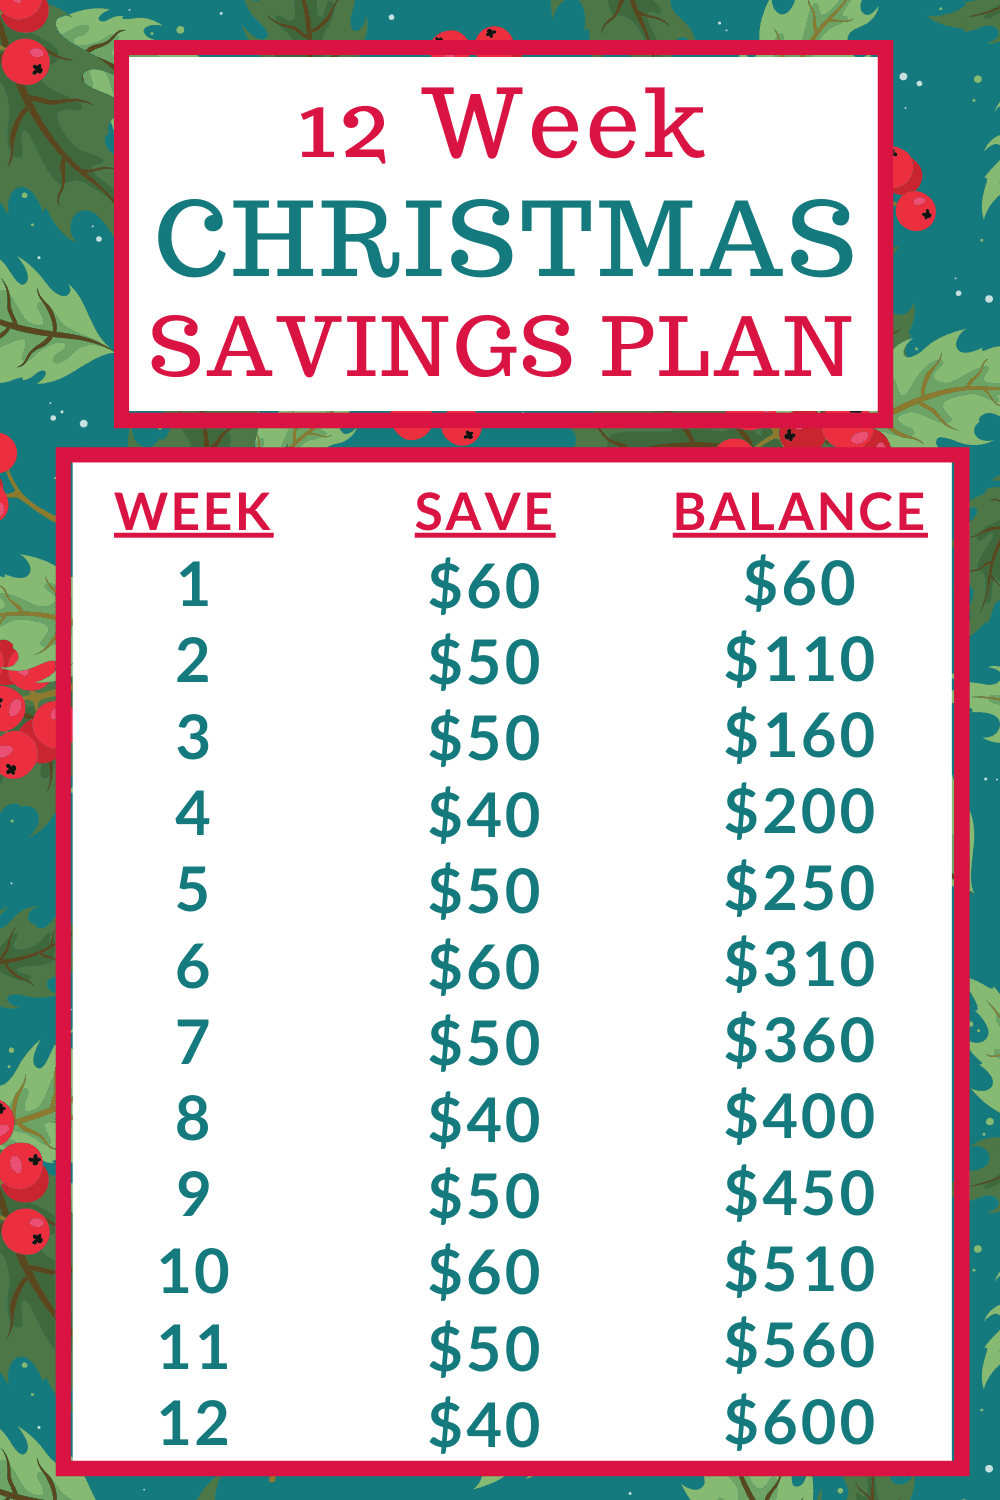 Learn how to save 0 in 12 weeks with this Christmas savings plan for! How to save money for Christmas this year, so you can actually enjoy the holiday season!